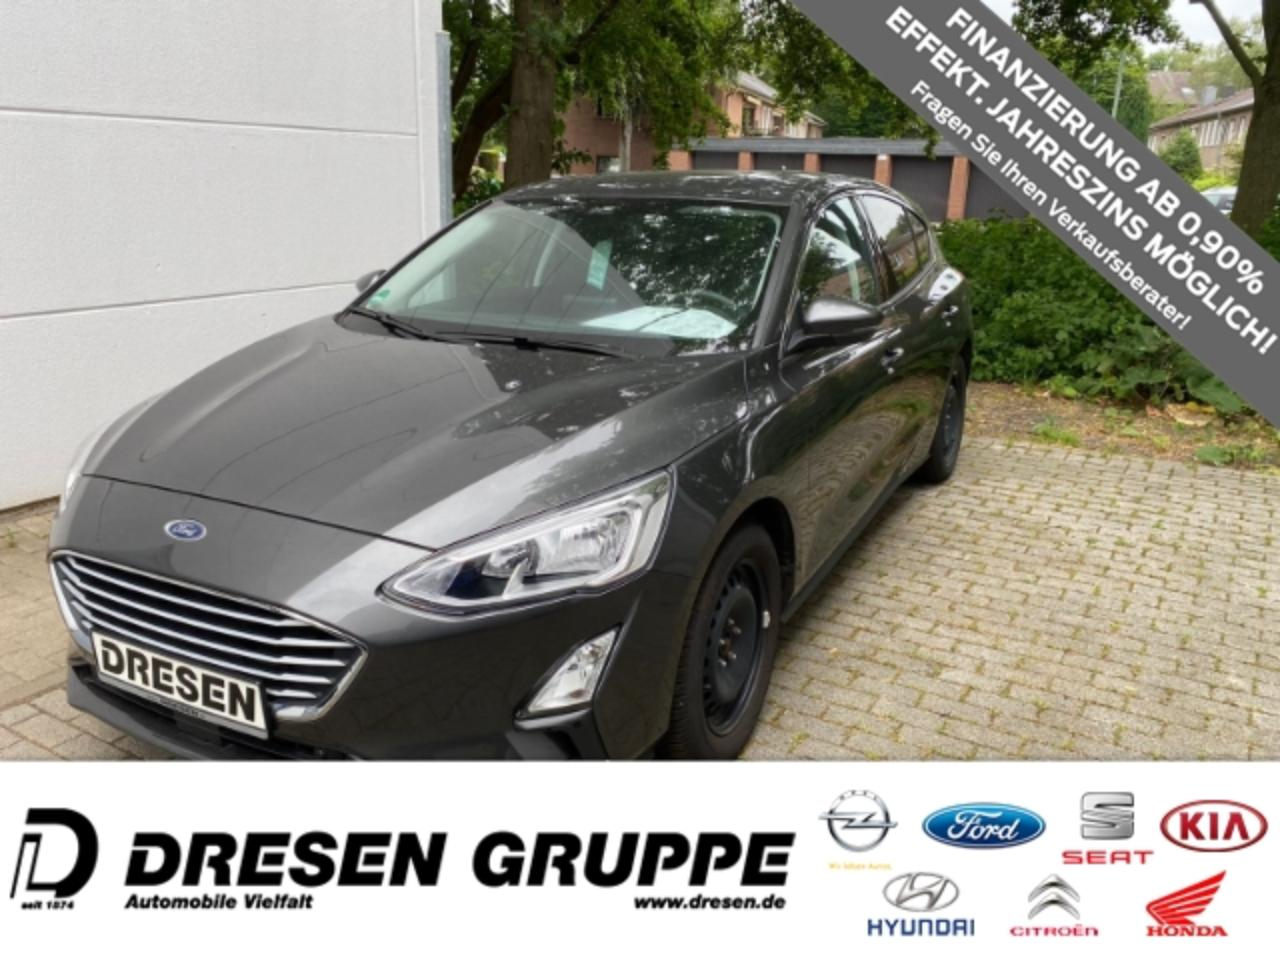 Ford Focus Cool&Connect 1.0 EcoBoost,Navi,Kamera,PDC